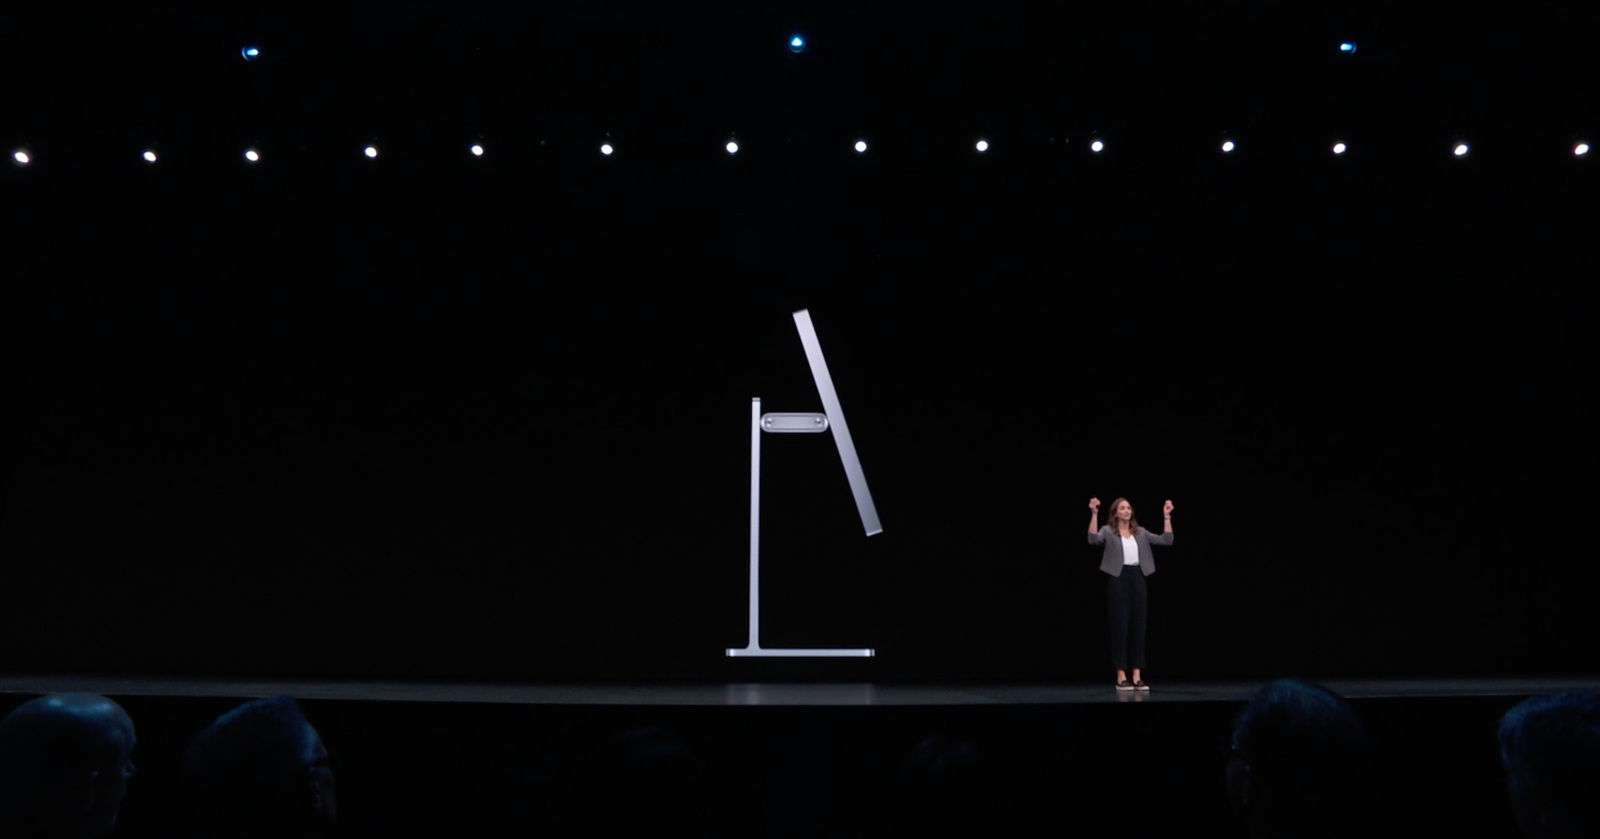 Roundup: Hands-on with Apple's new Mac Pro and Pro Display